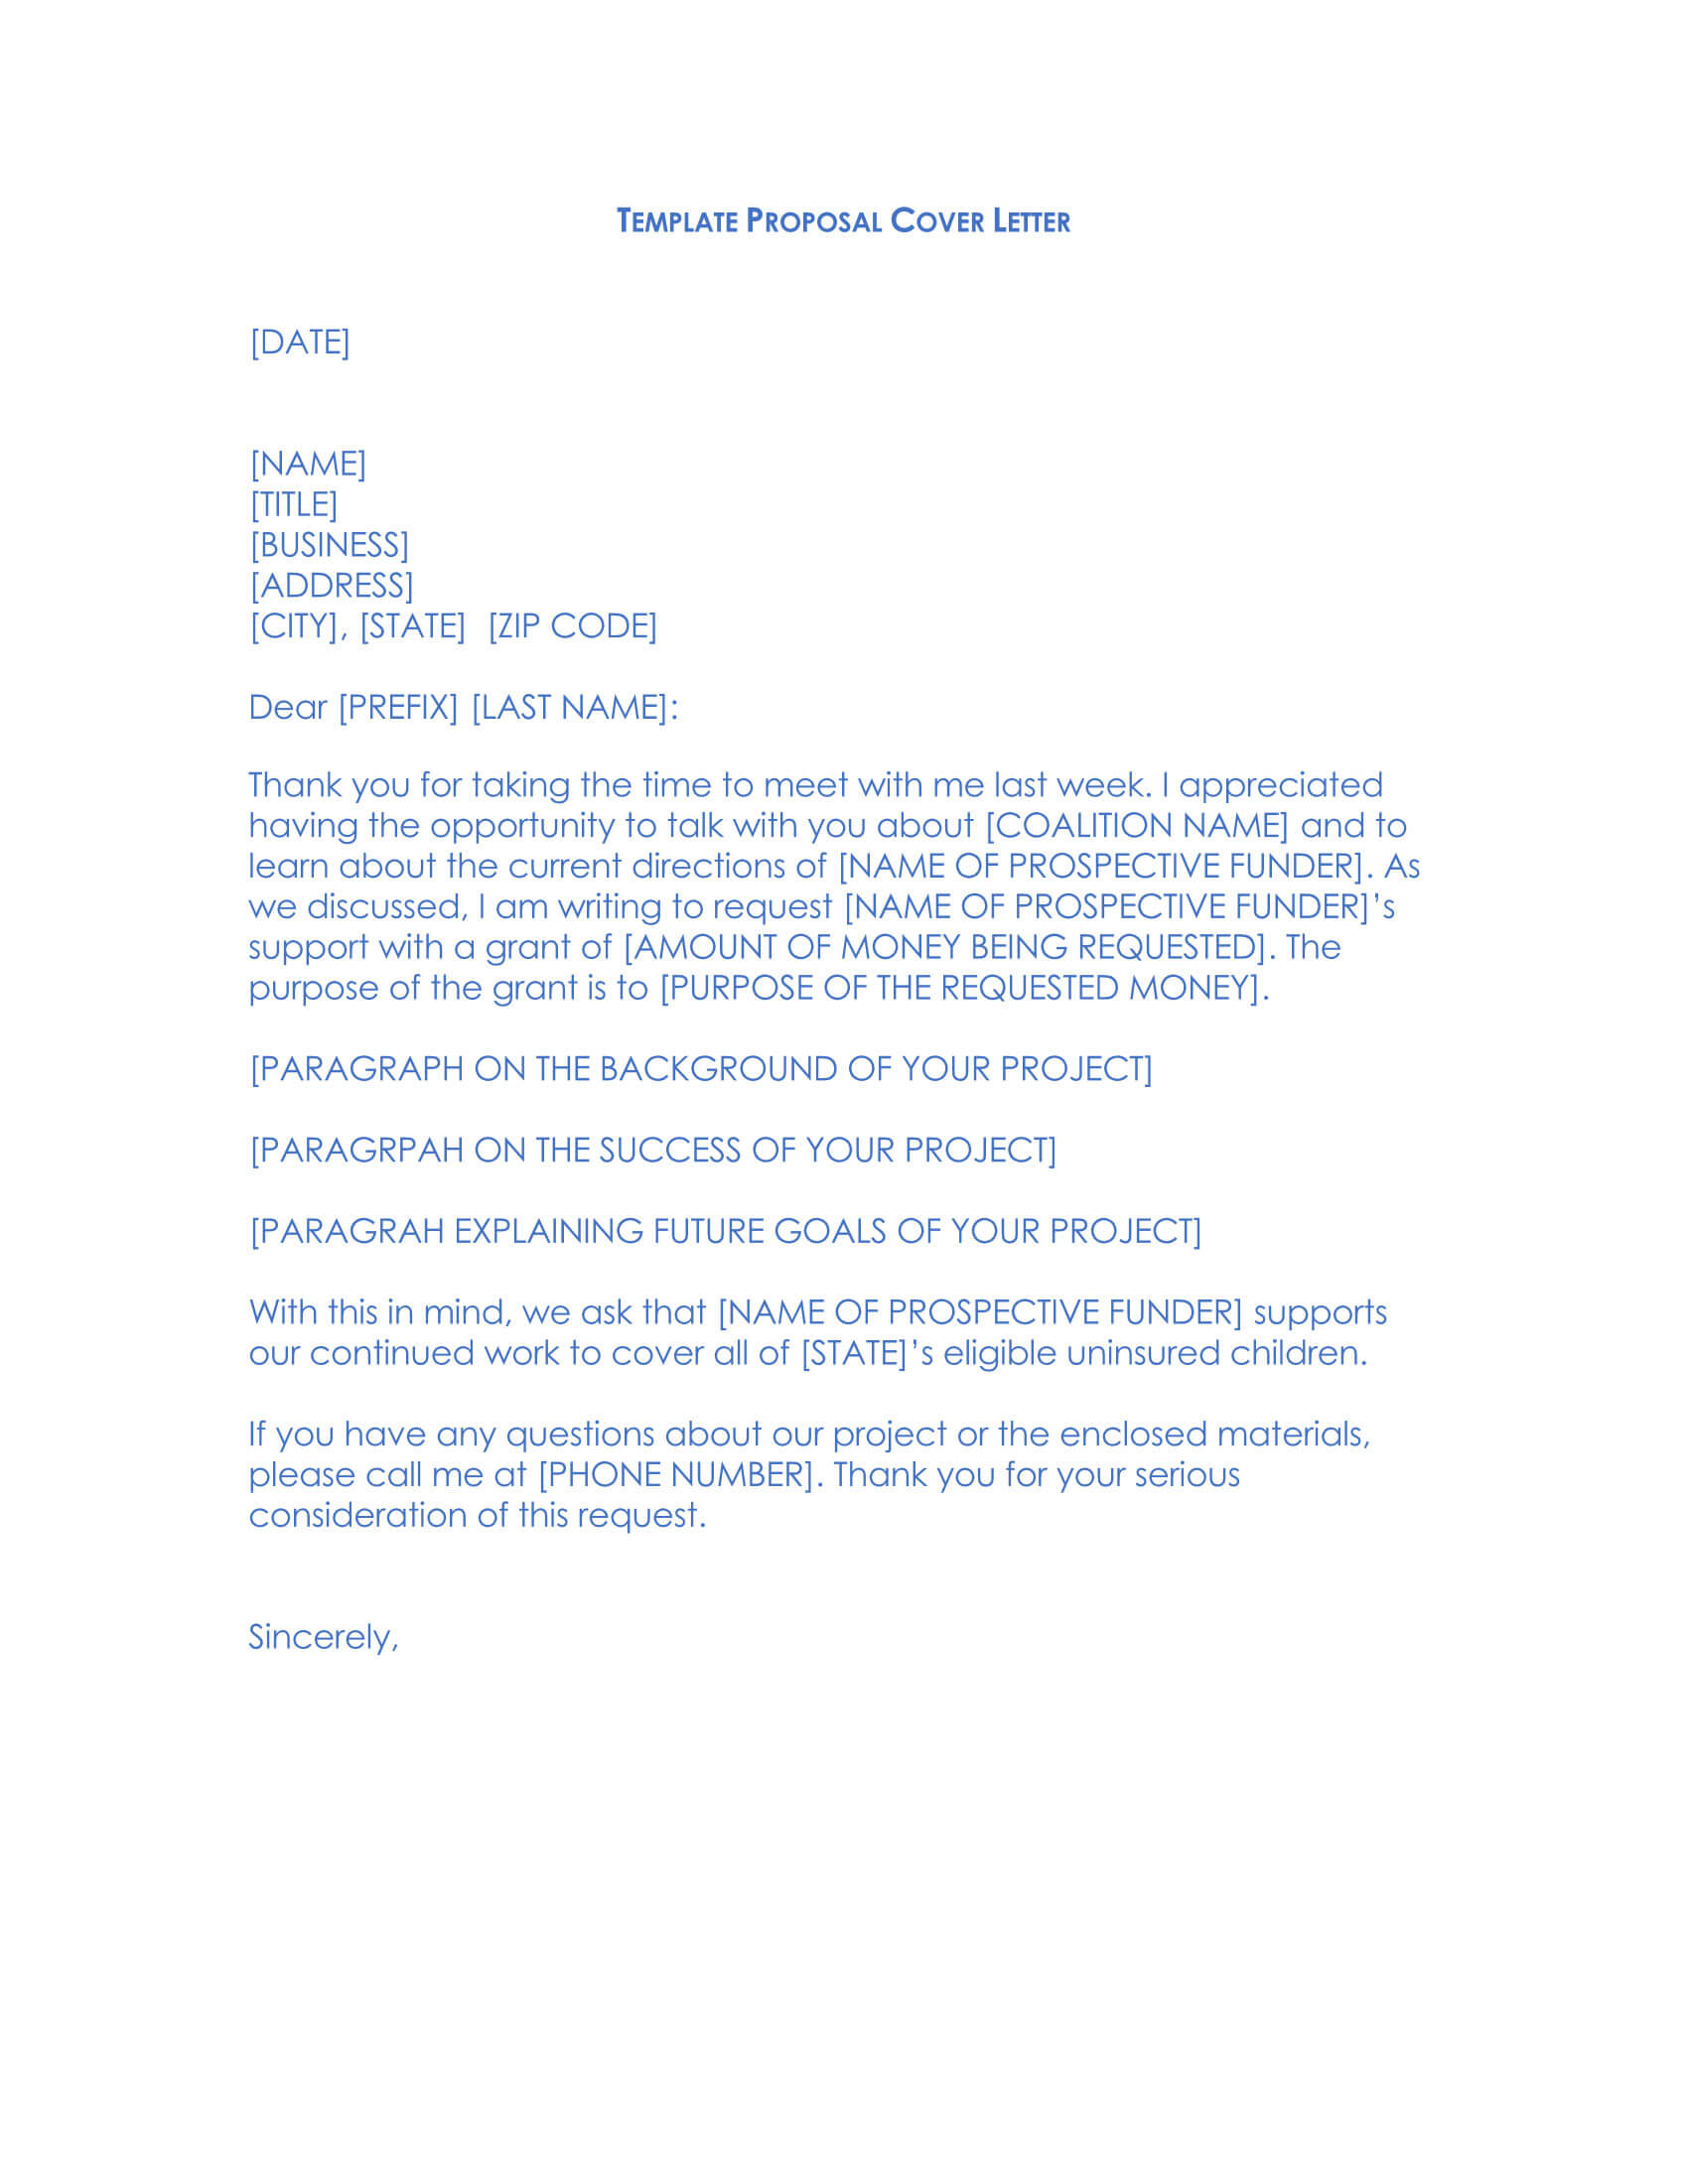 Grant Request Letter 03